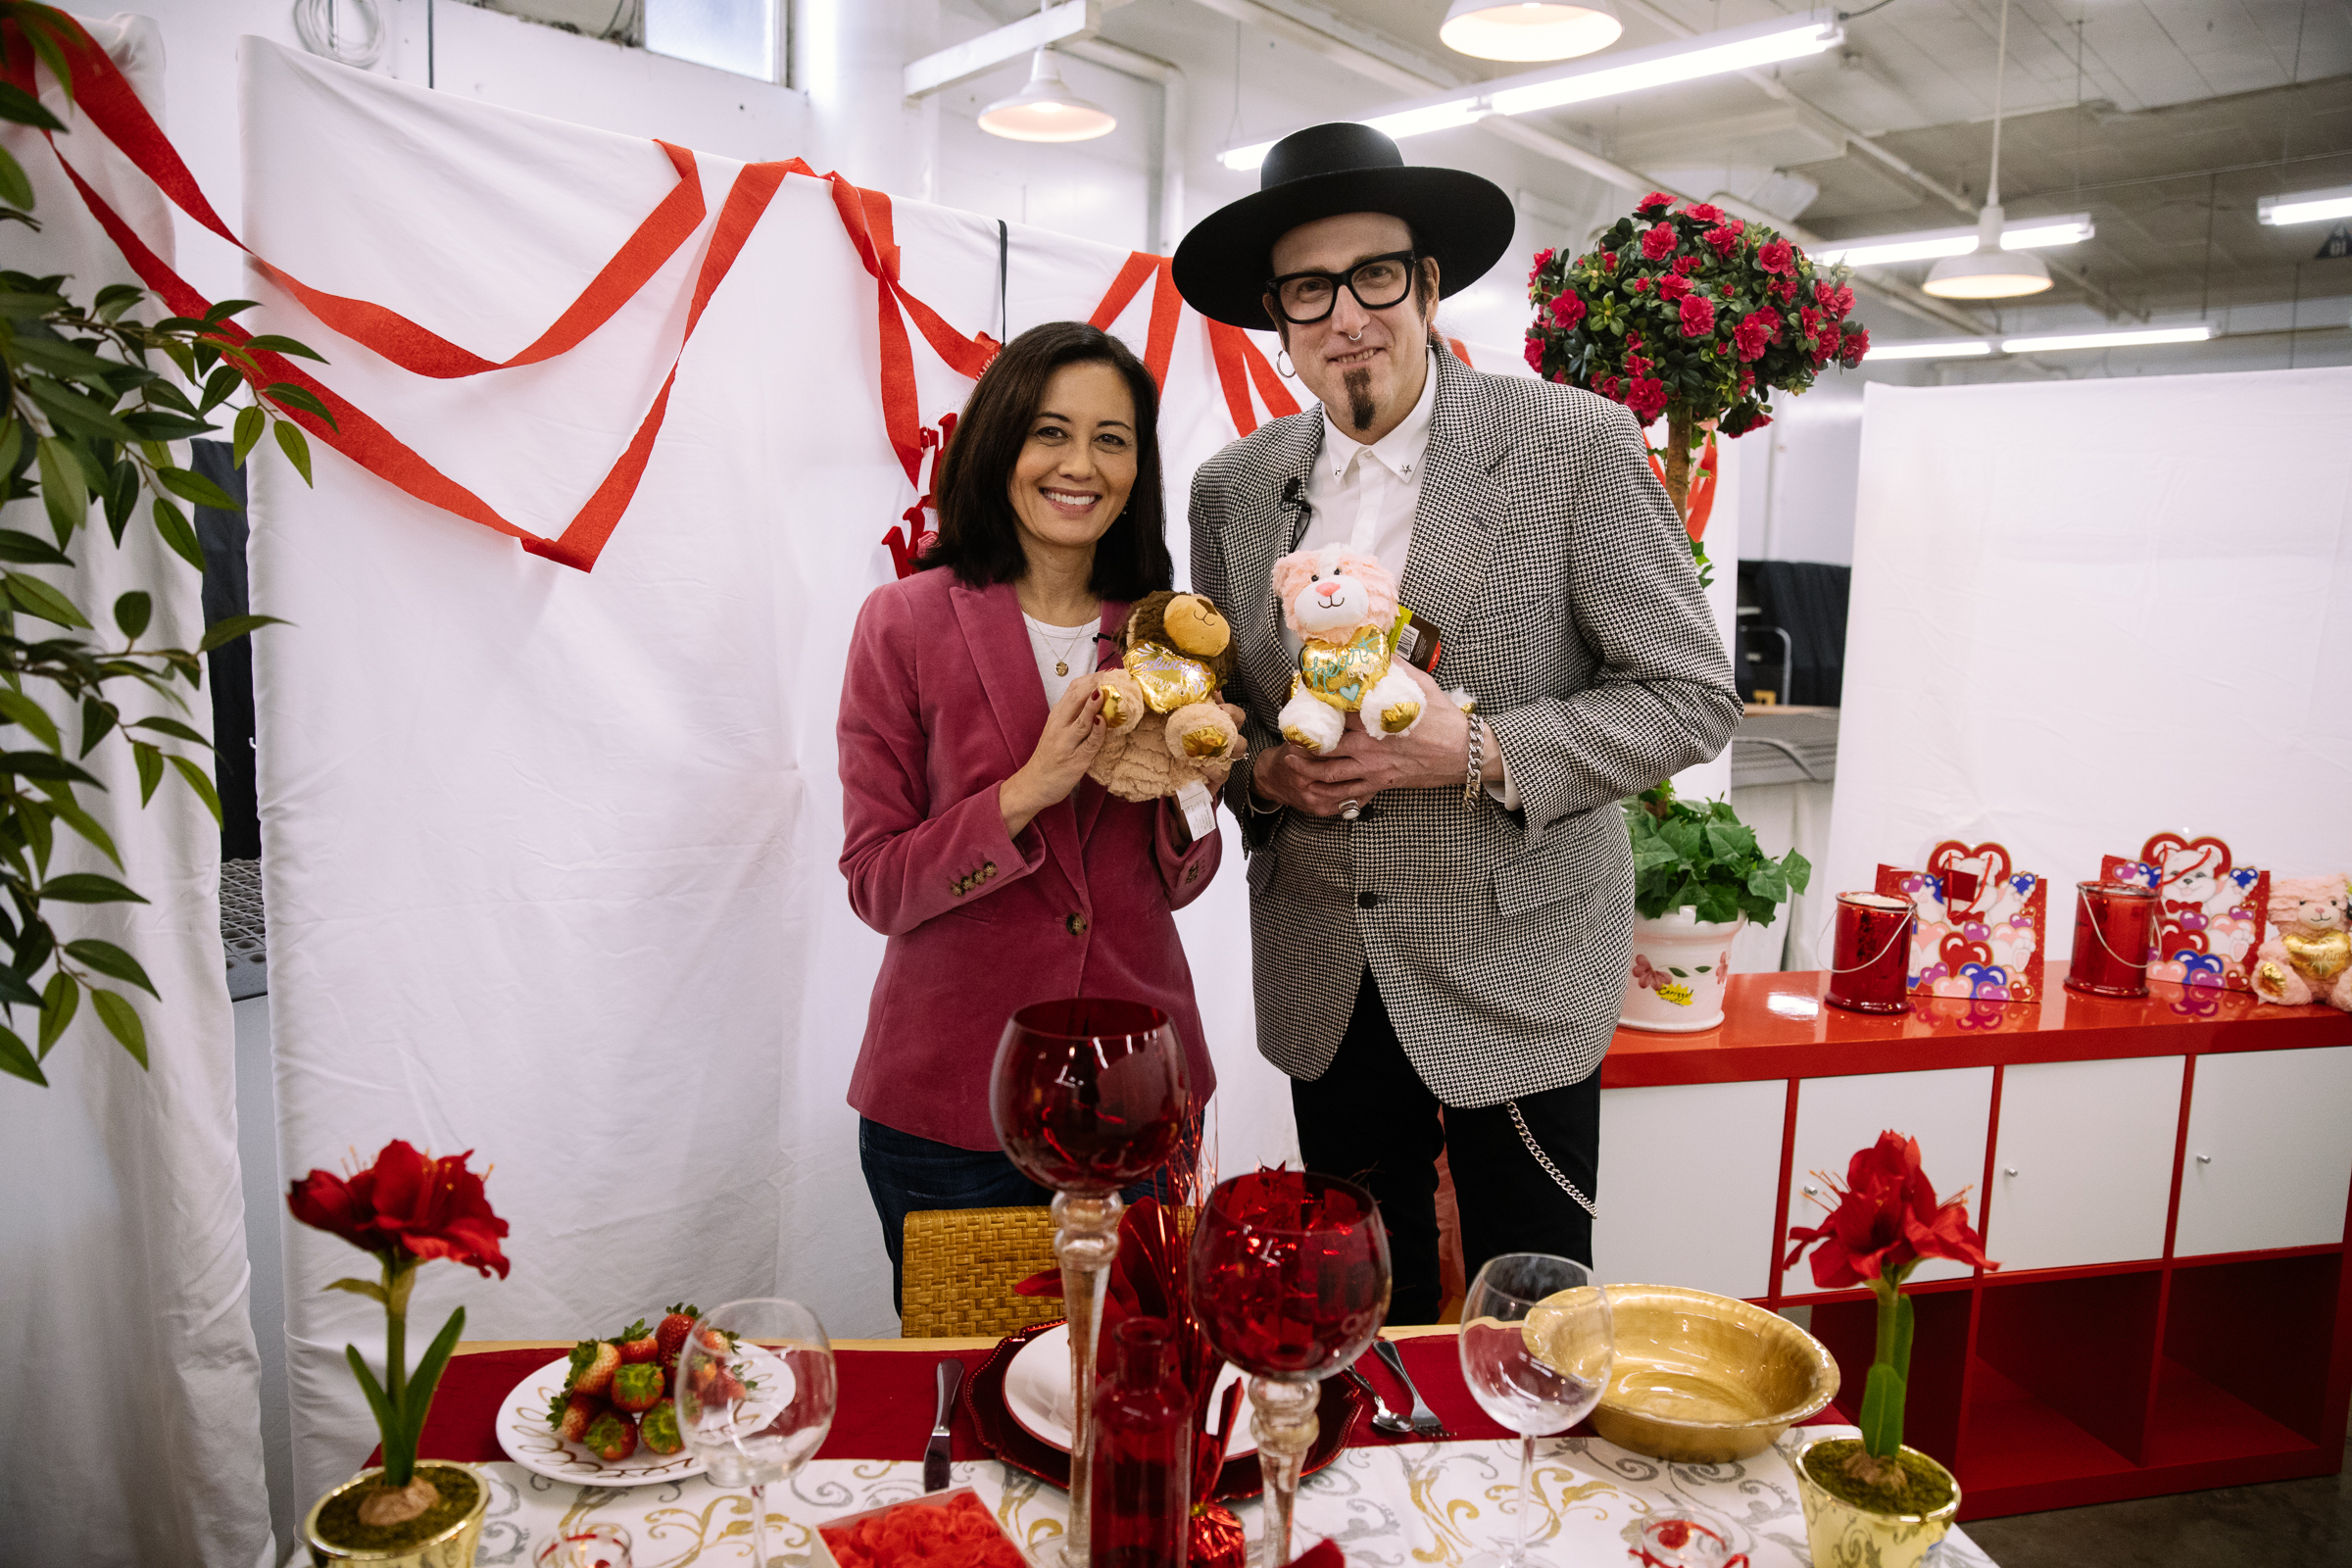 Seattle Goodwill's DIY Guy Gary Foy and Seattle Refined's Malia Karlinsky. Seattle Goodwill is your one-stop shop for Valentine's Day. From new themed gift items to furniture and decor, you'll love the great selection and budget friendly finds. Plus, they have everything you need to create the perfect romantic tablescape, including plates and glass votive holders that you can make DIY projects with. (Photo courtesy Seattle Goodwill)